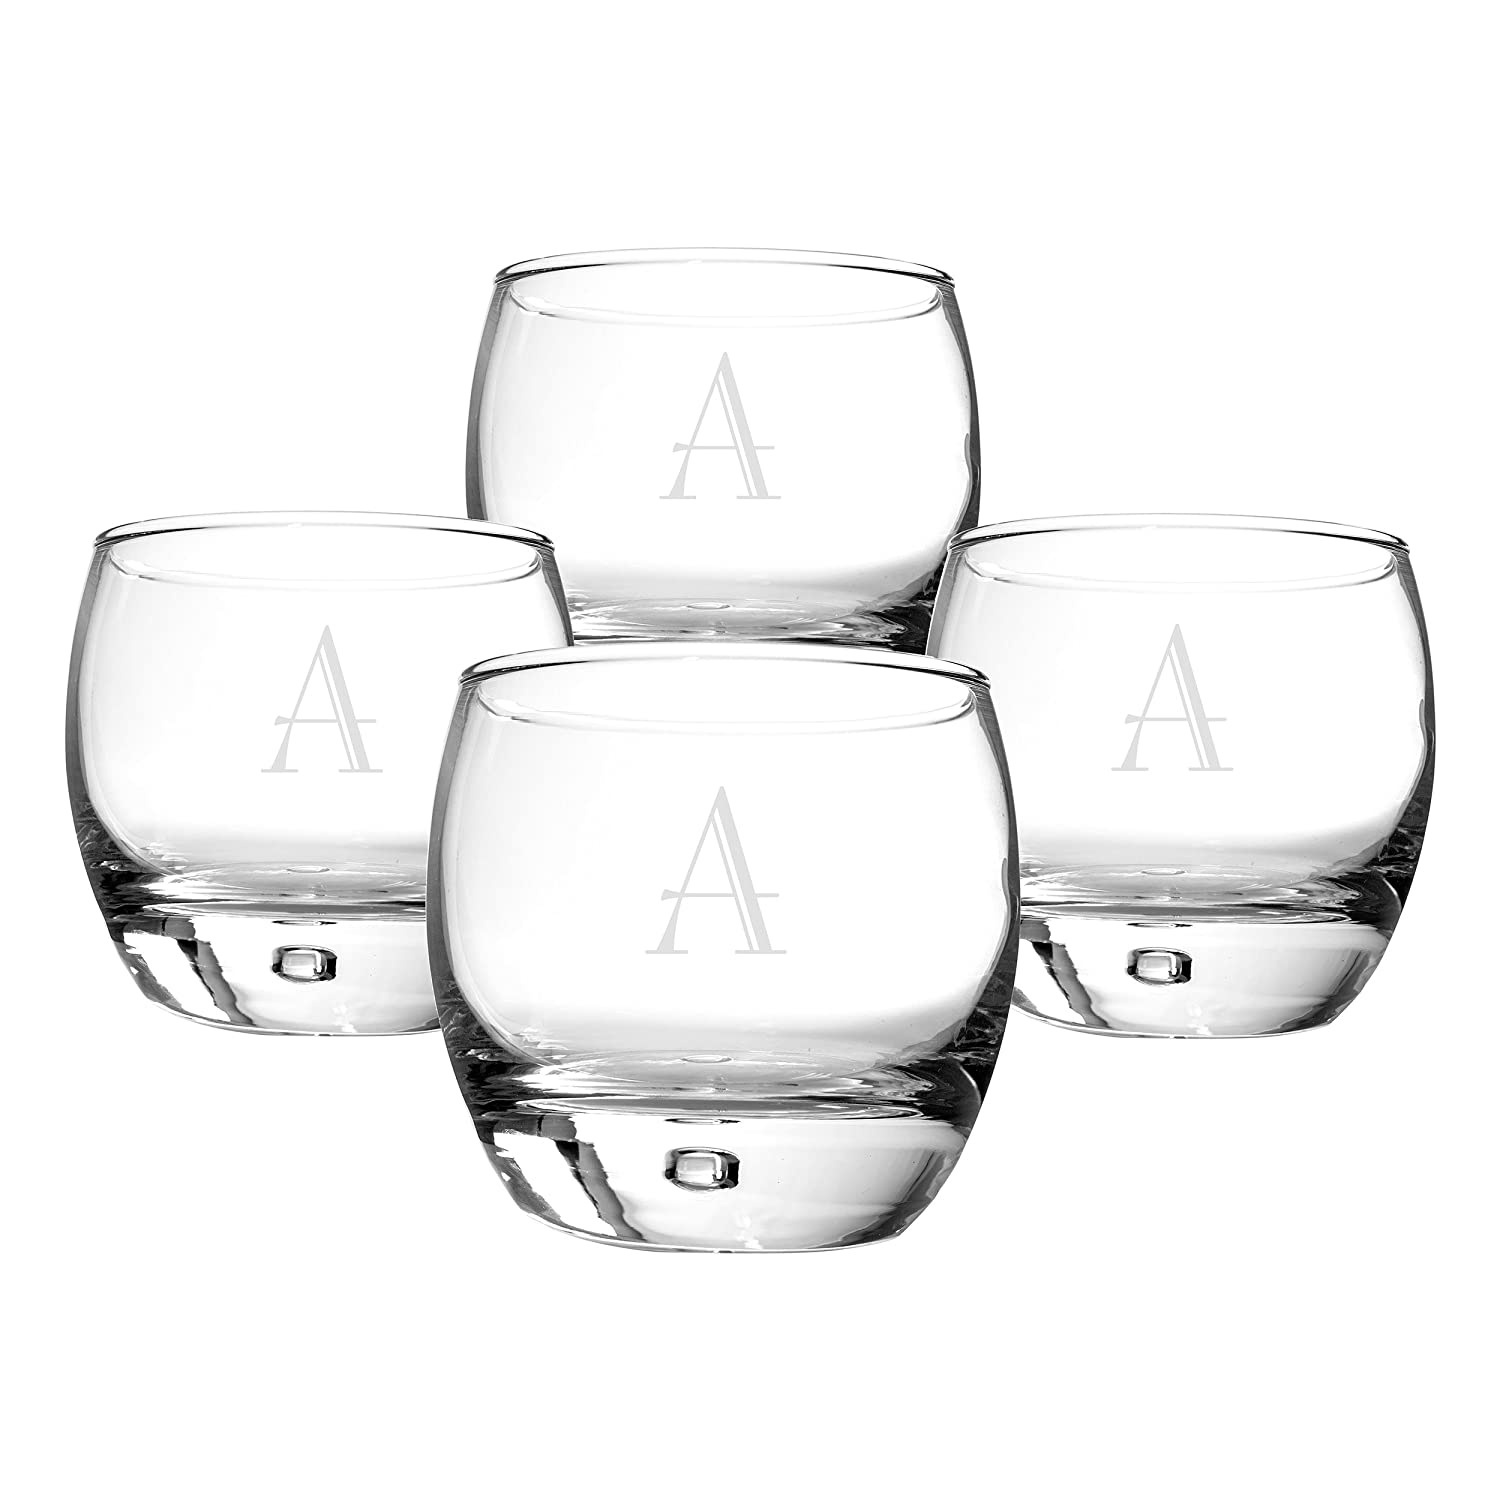 Cathy's Concepts Personalized Heavy Based Whiskey Glasses, Set of 4, Letter S Cathy's Concepts 1116-4-S